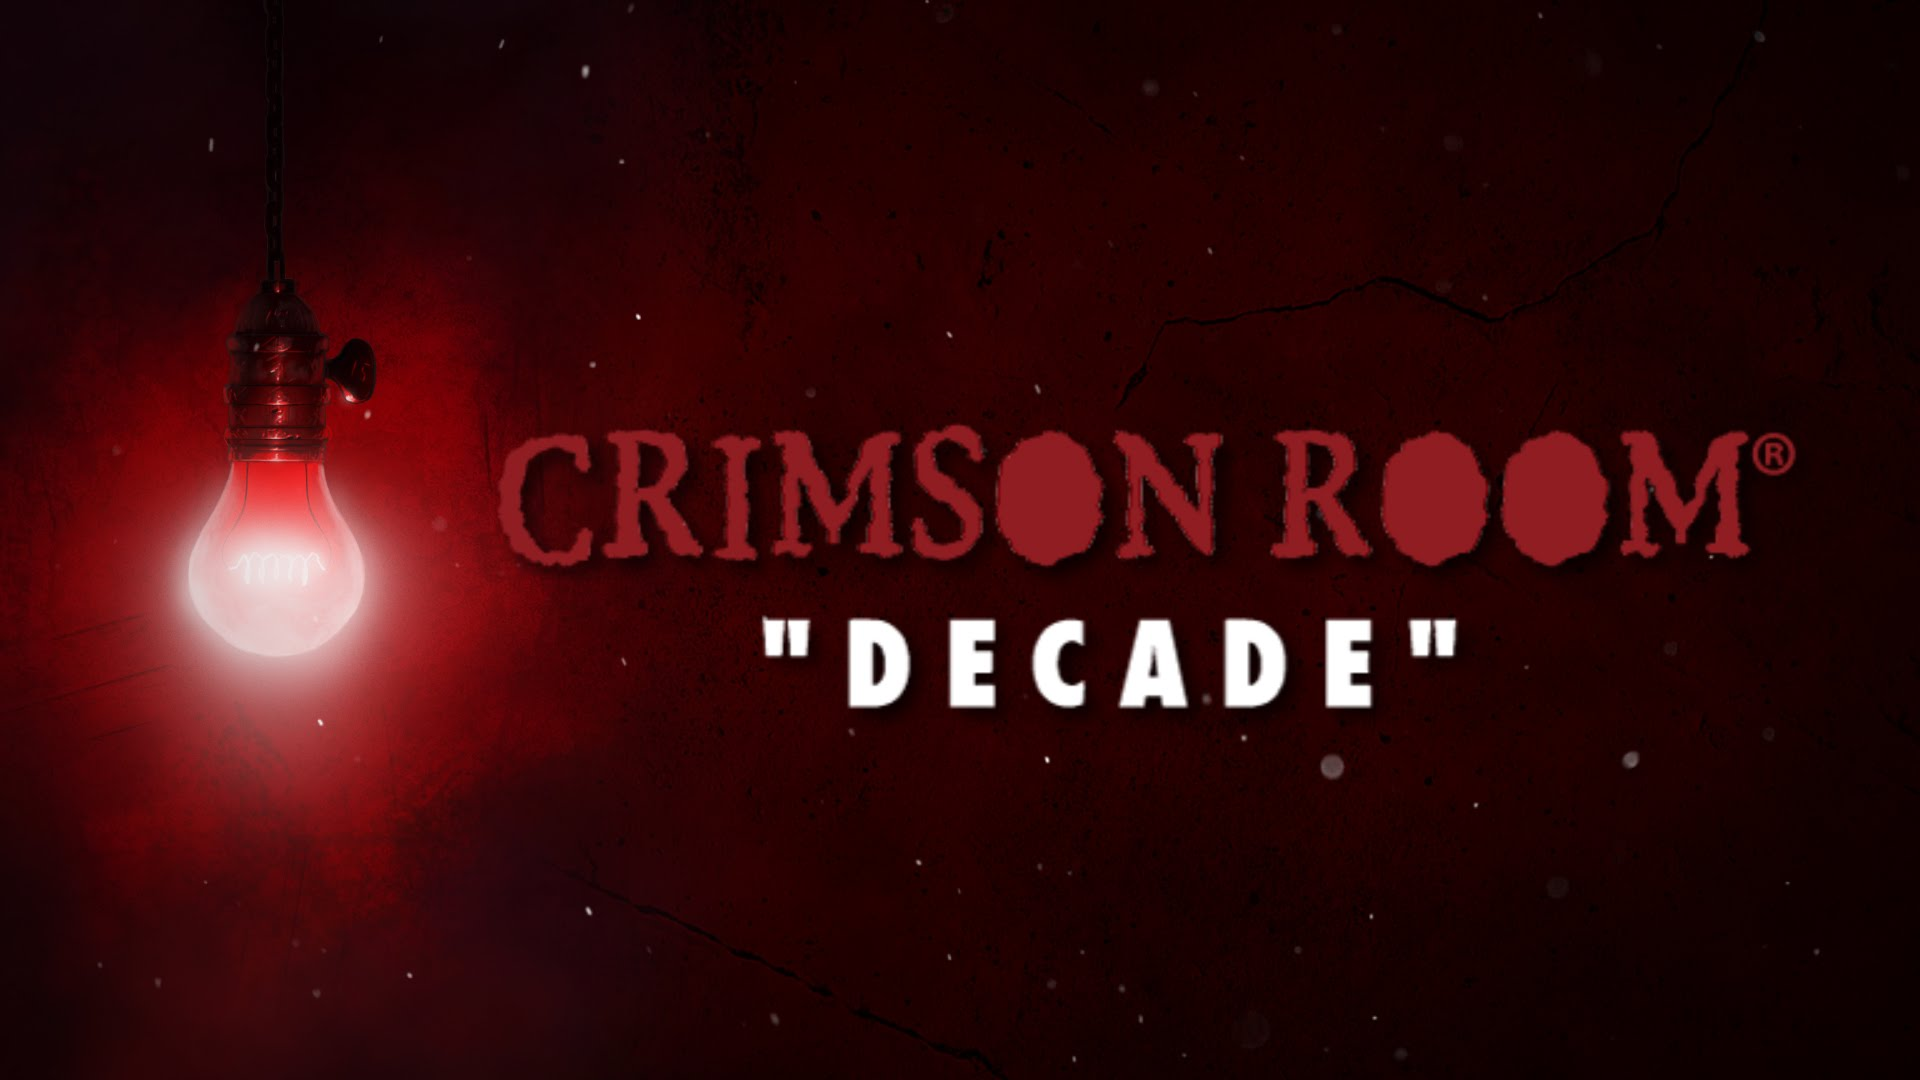 crimson room decade